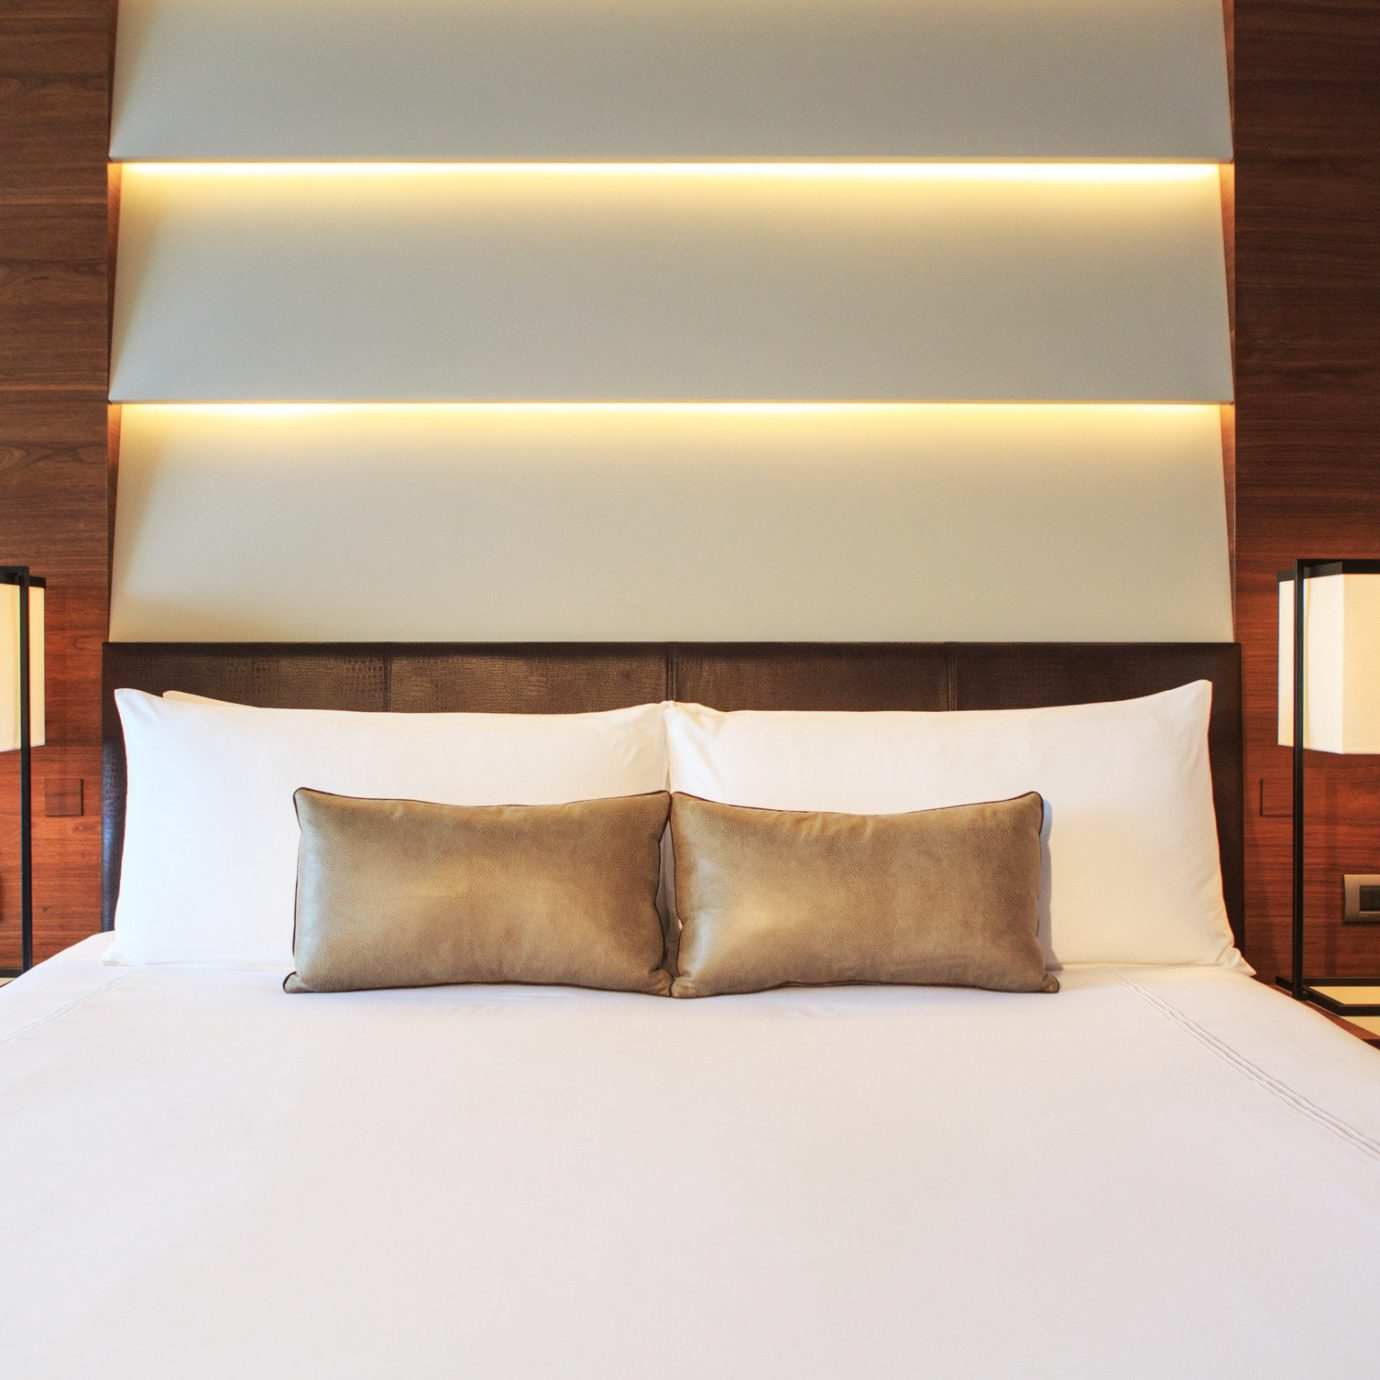 Bedroom Classic Suite pillow lighting bed sheet bed frame clean lamp